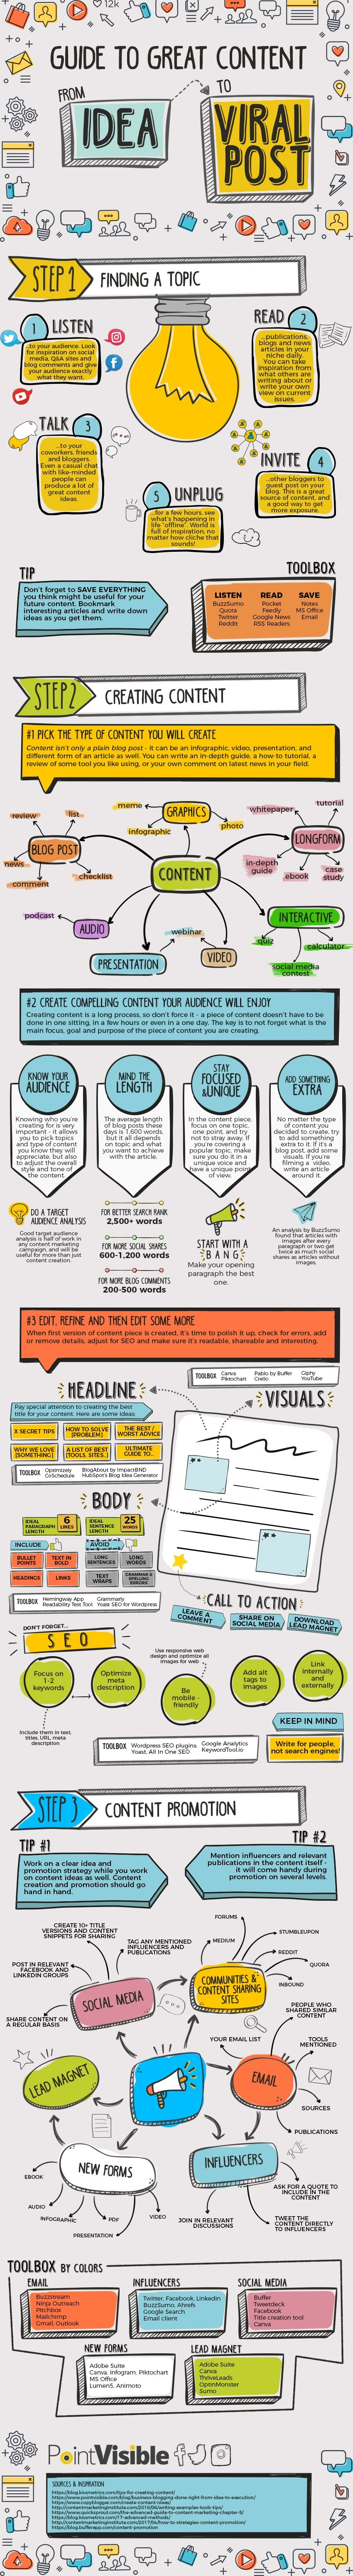 A Roadmap To Great Content – From Idea To Viral Post - #infographic